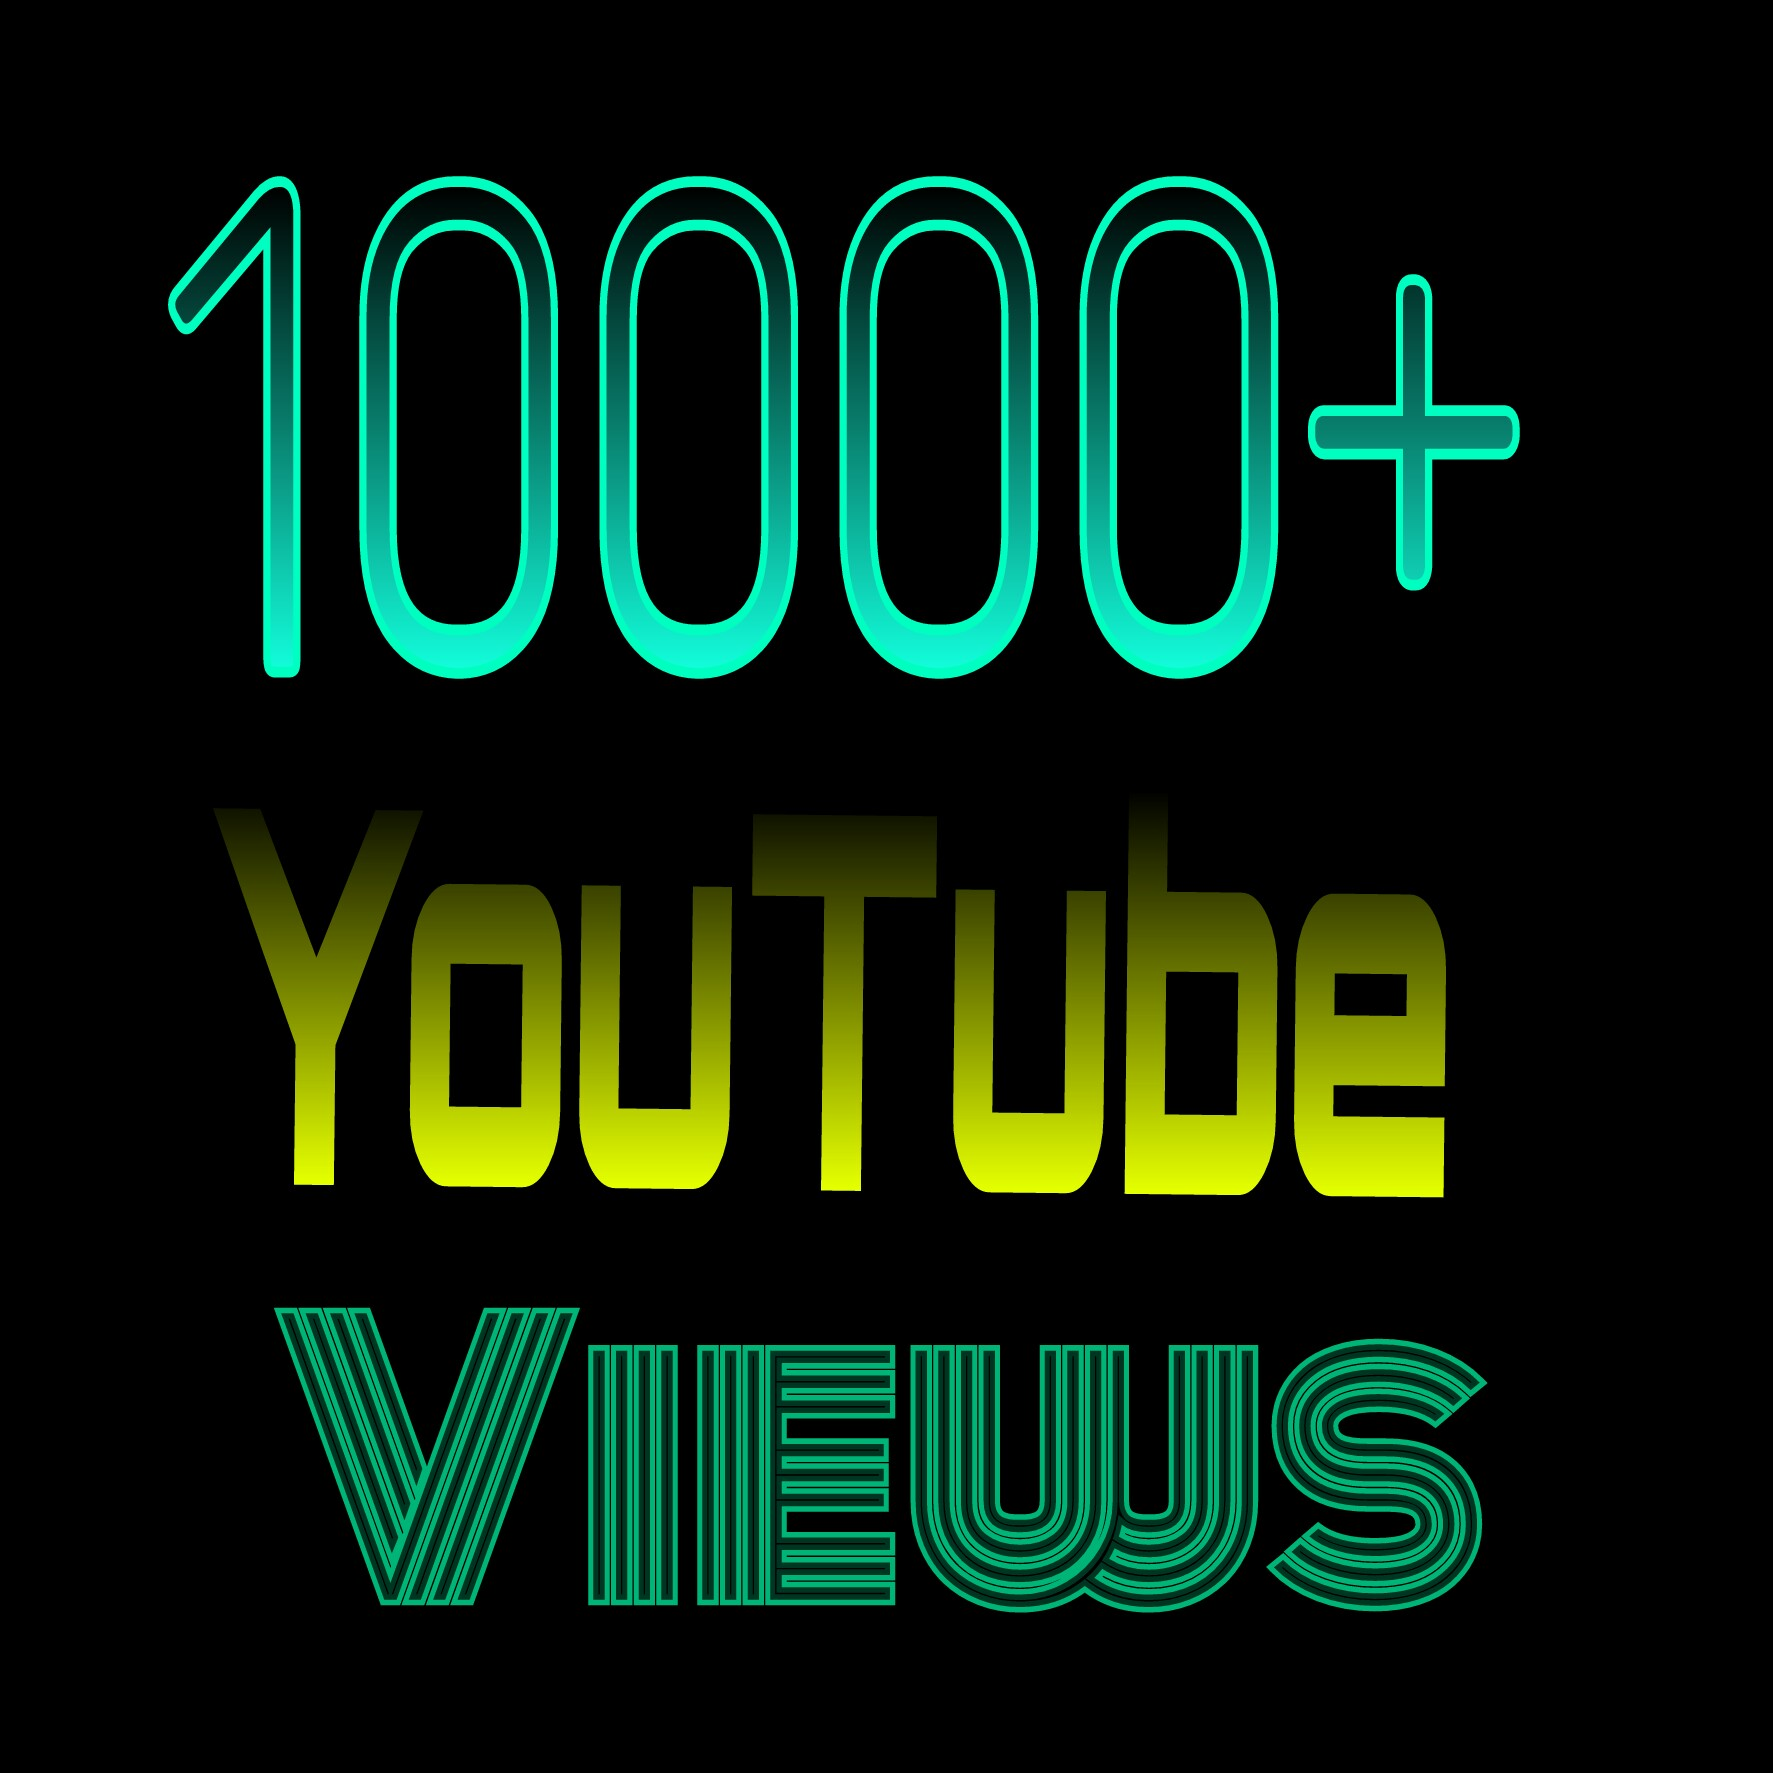 Permanent & Human Verified Active 10000 +YouTube Views and 50 likes